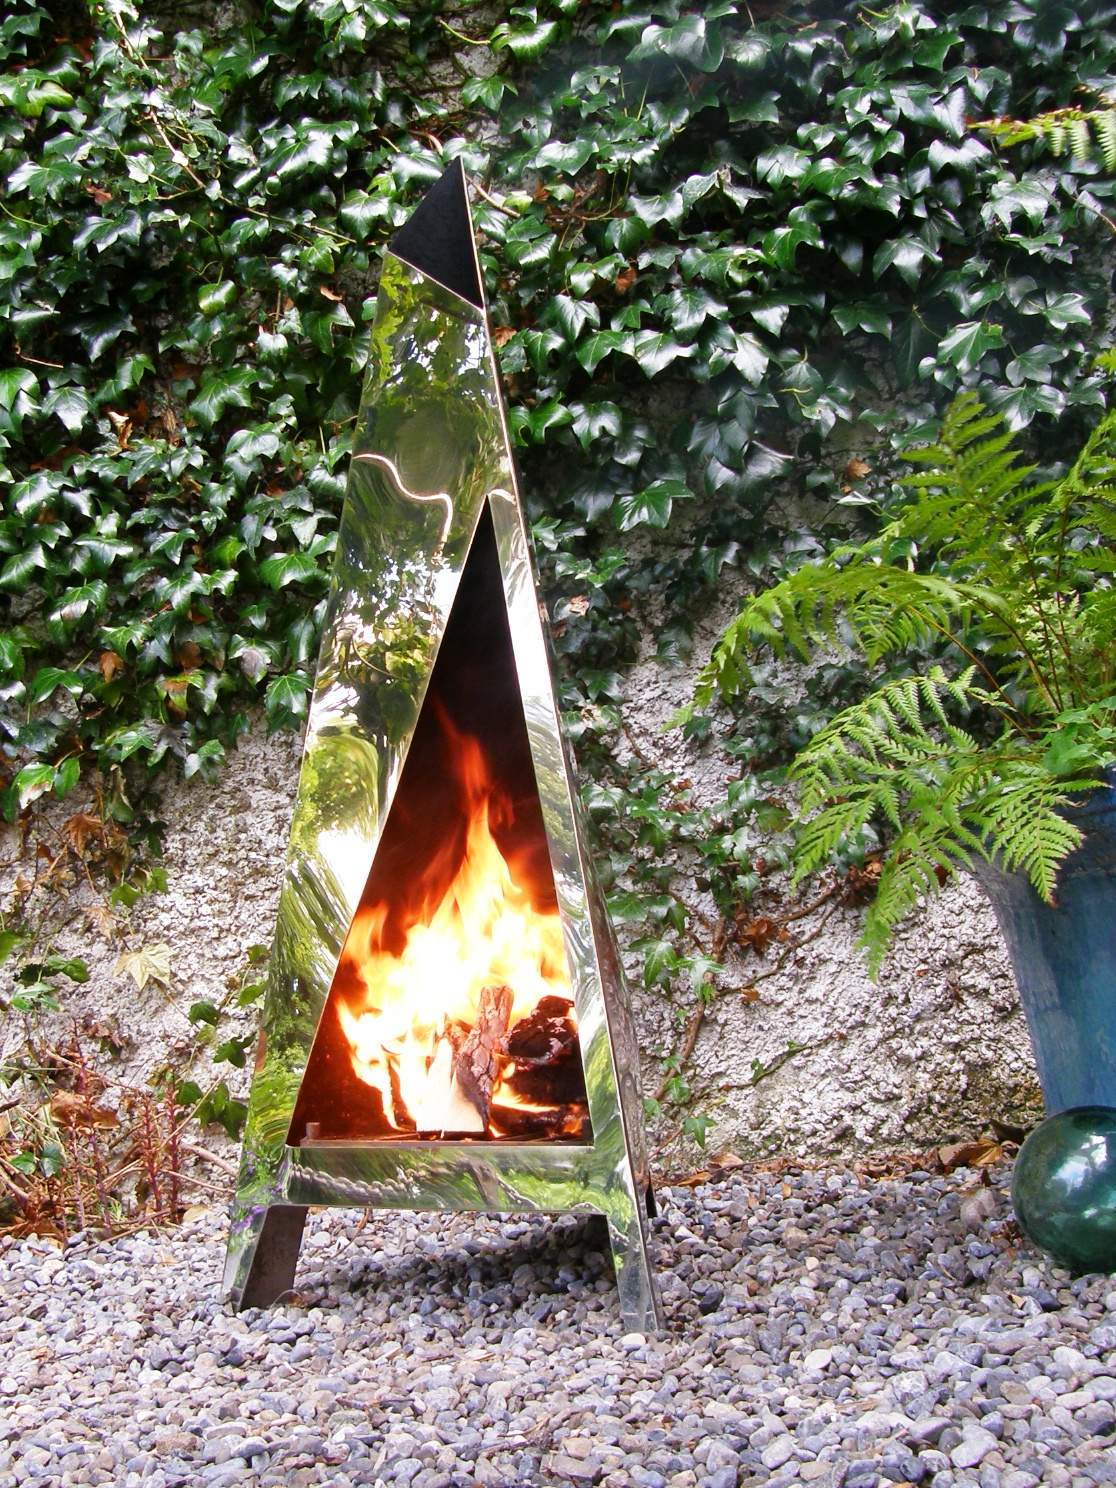 Summertime FIRE'NESS - Handmade in Stainless Steel - €695.00